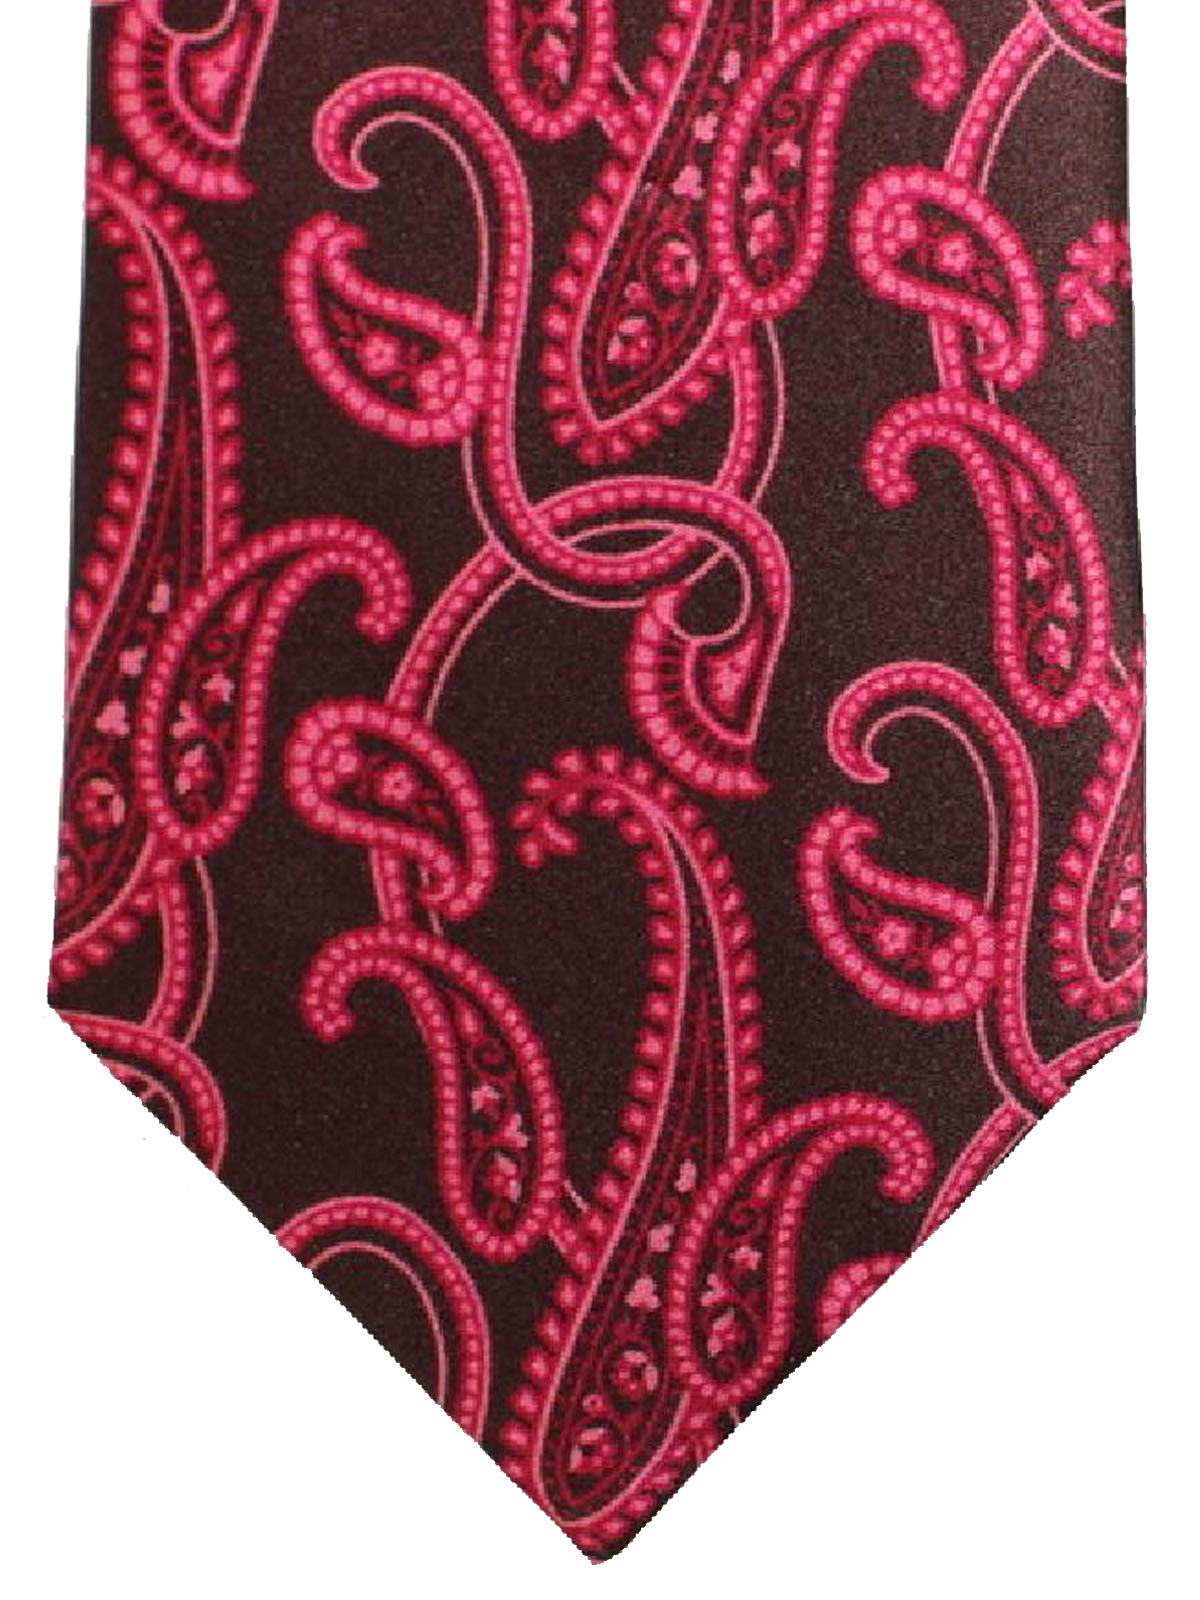 6ae7f413a078 Brioni Tie Purple Fuchsia Paisley Design. Designer Ties. Men's Neckties